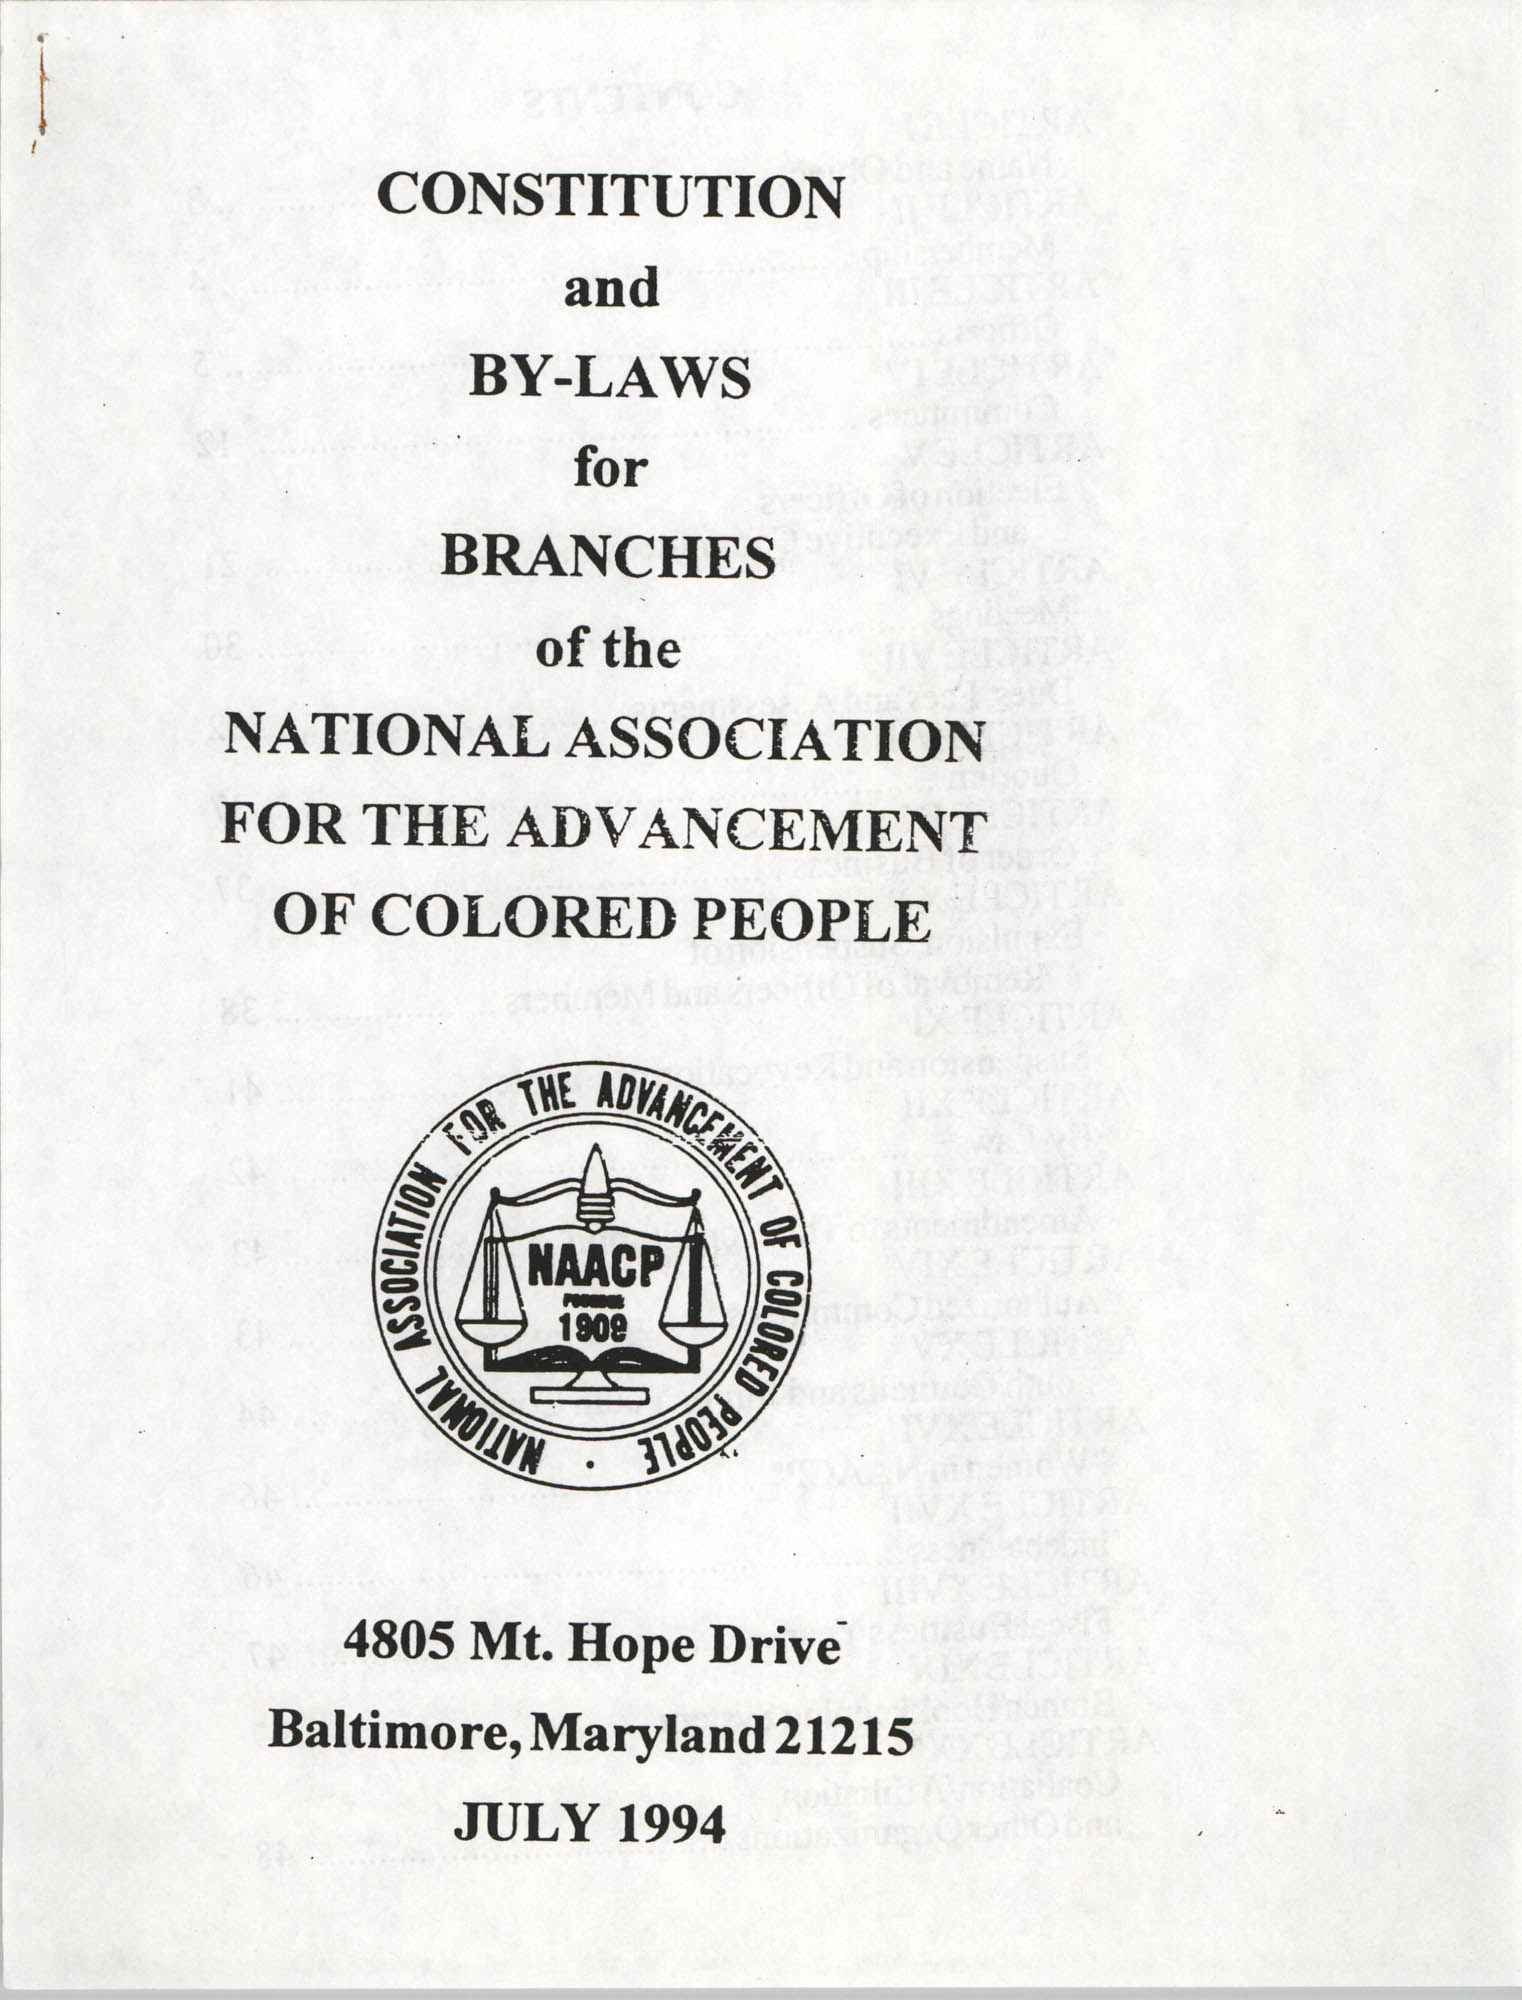 Constitution and By-Laws for Branches of the NAACP, July 1994